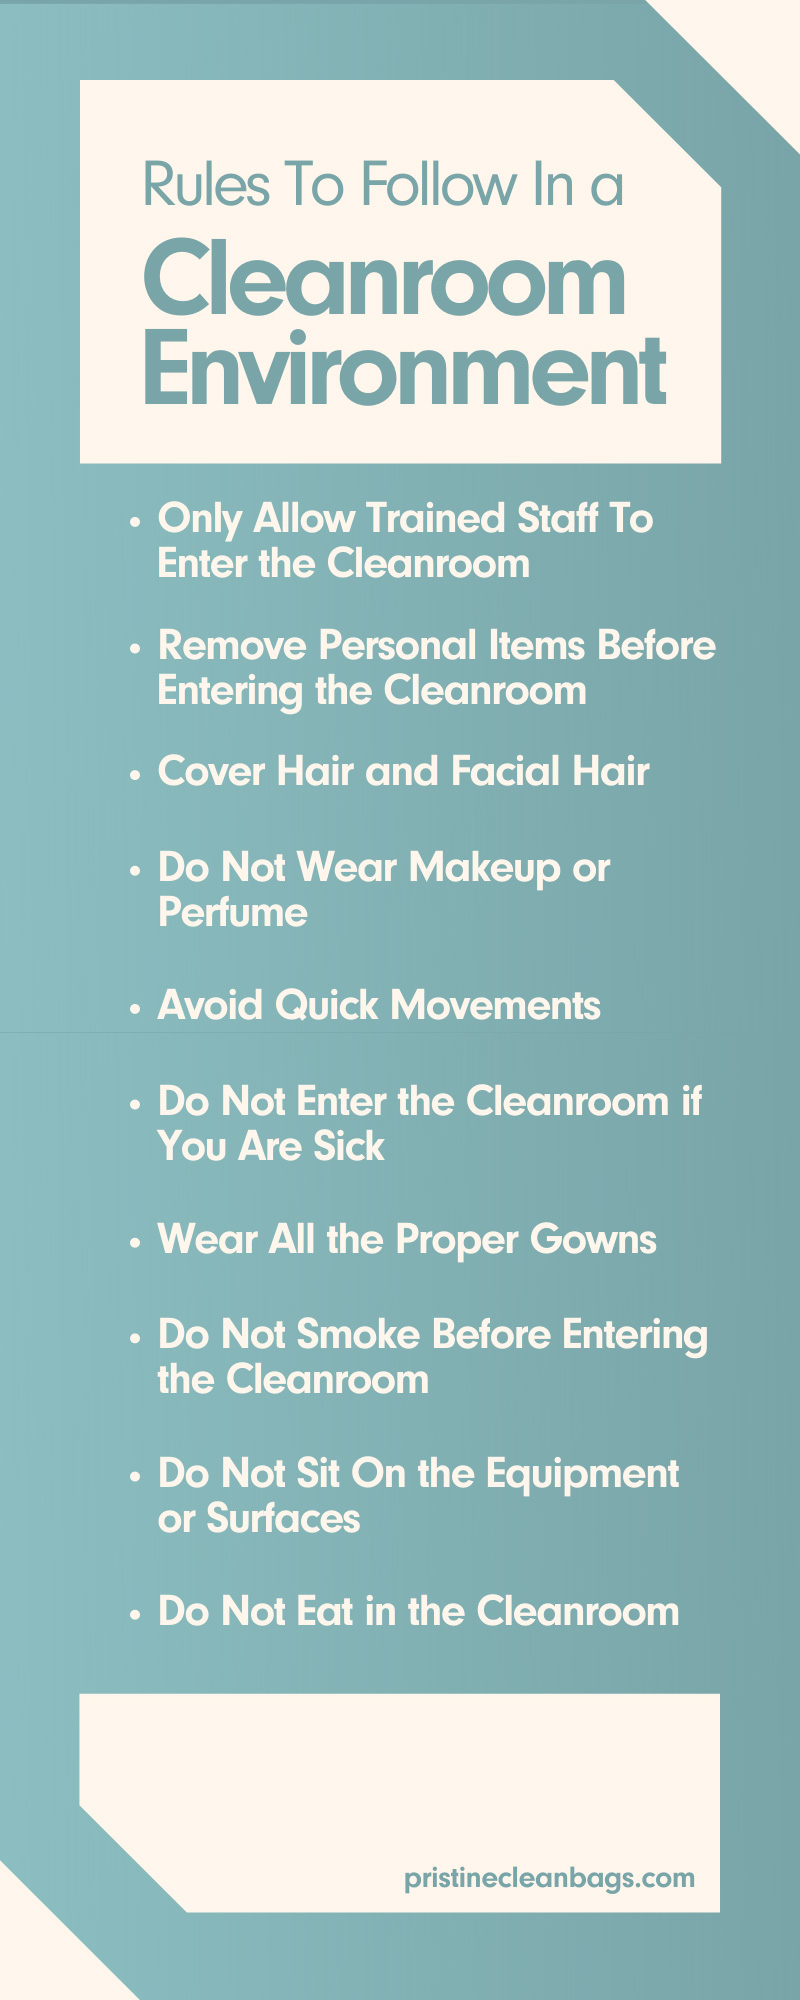 Rules To Follow In a Cleanroom Environment